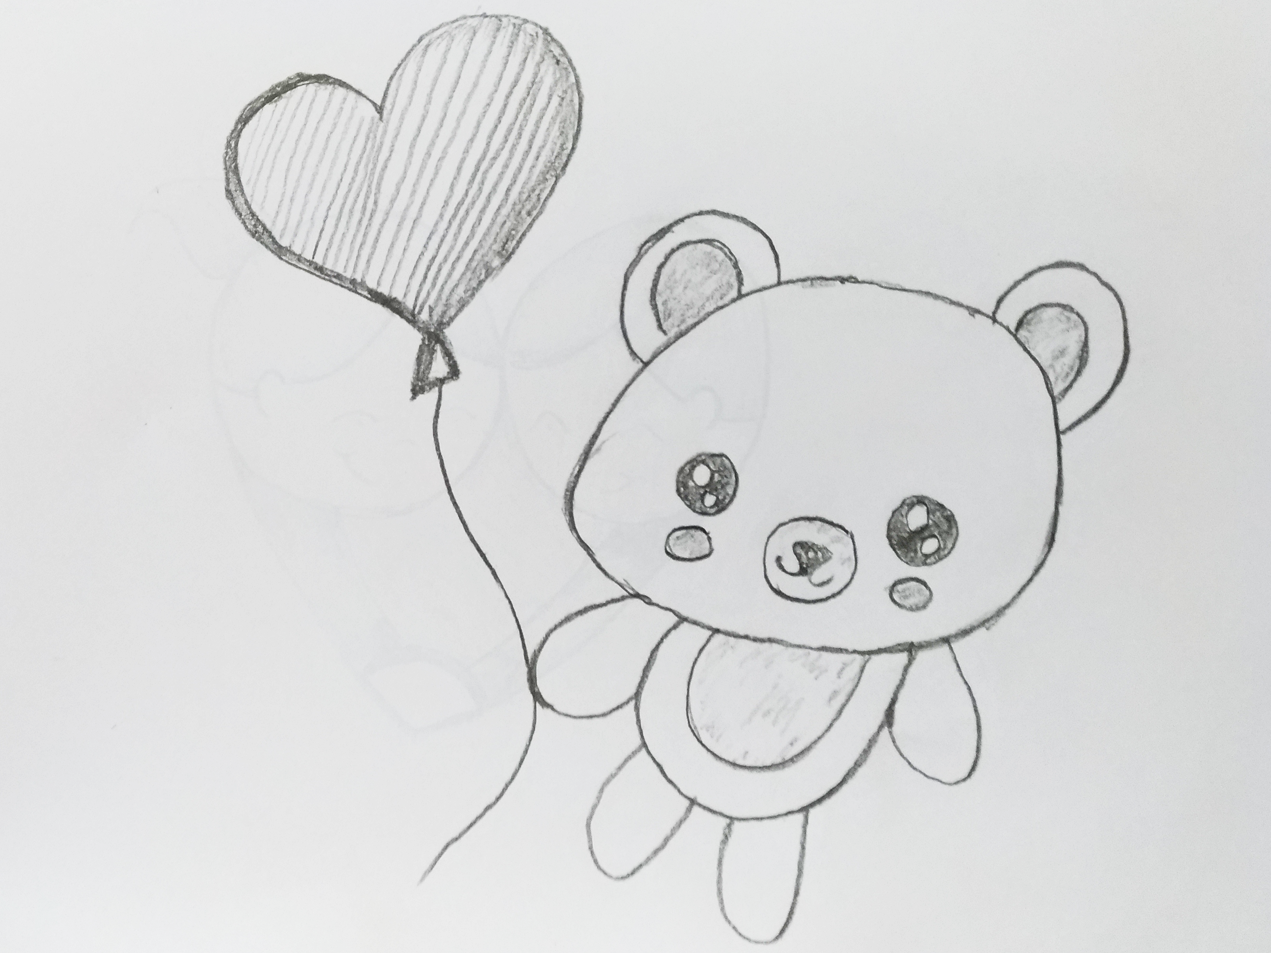 Love heart bear art by mlspcart on dribbble